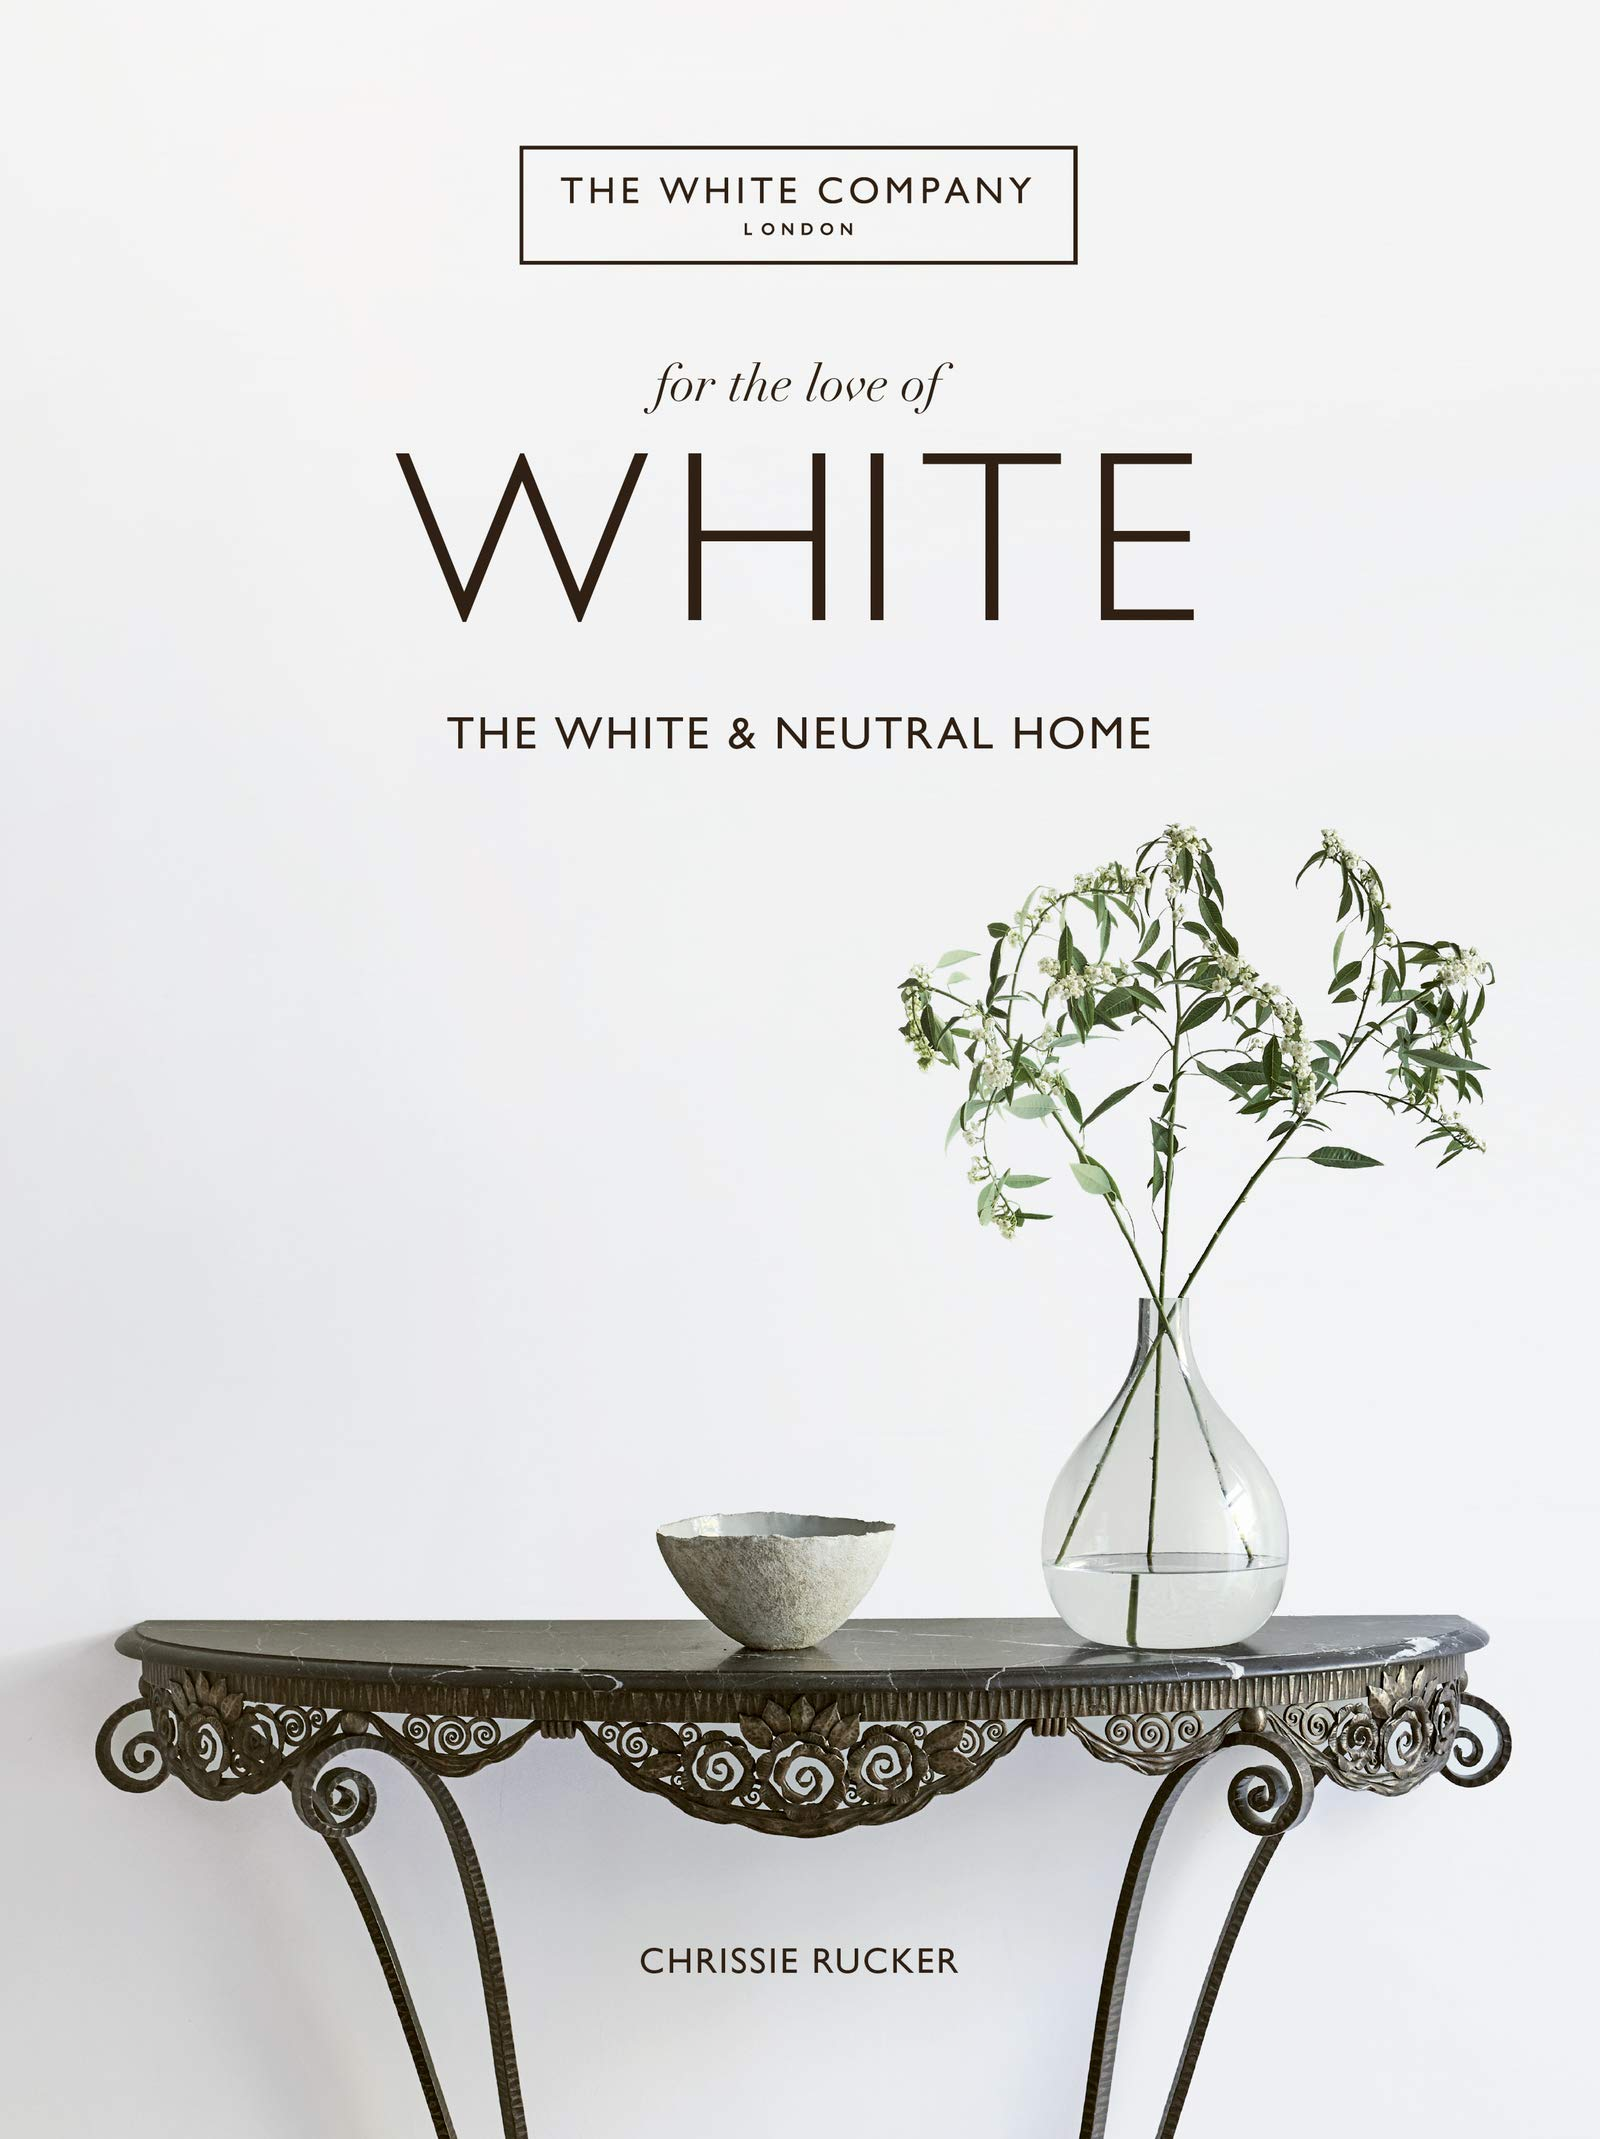 For-the-love-of-white-decor-book